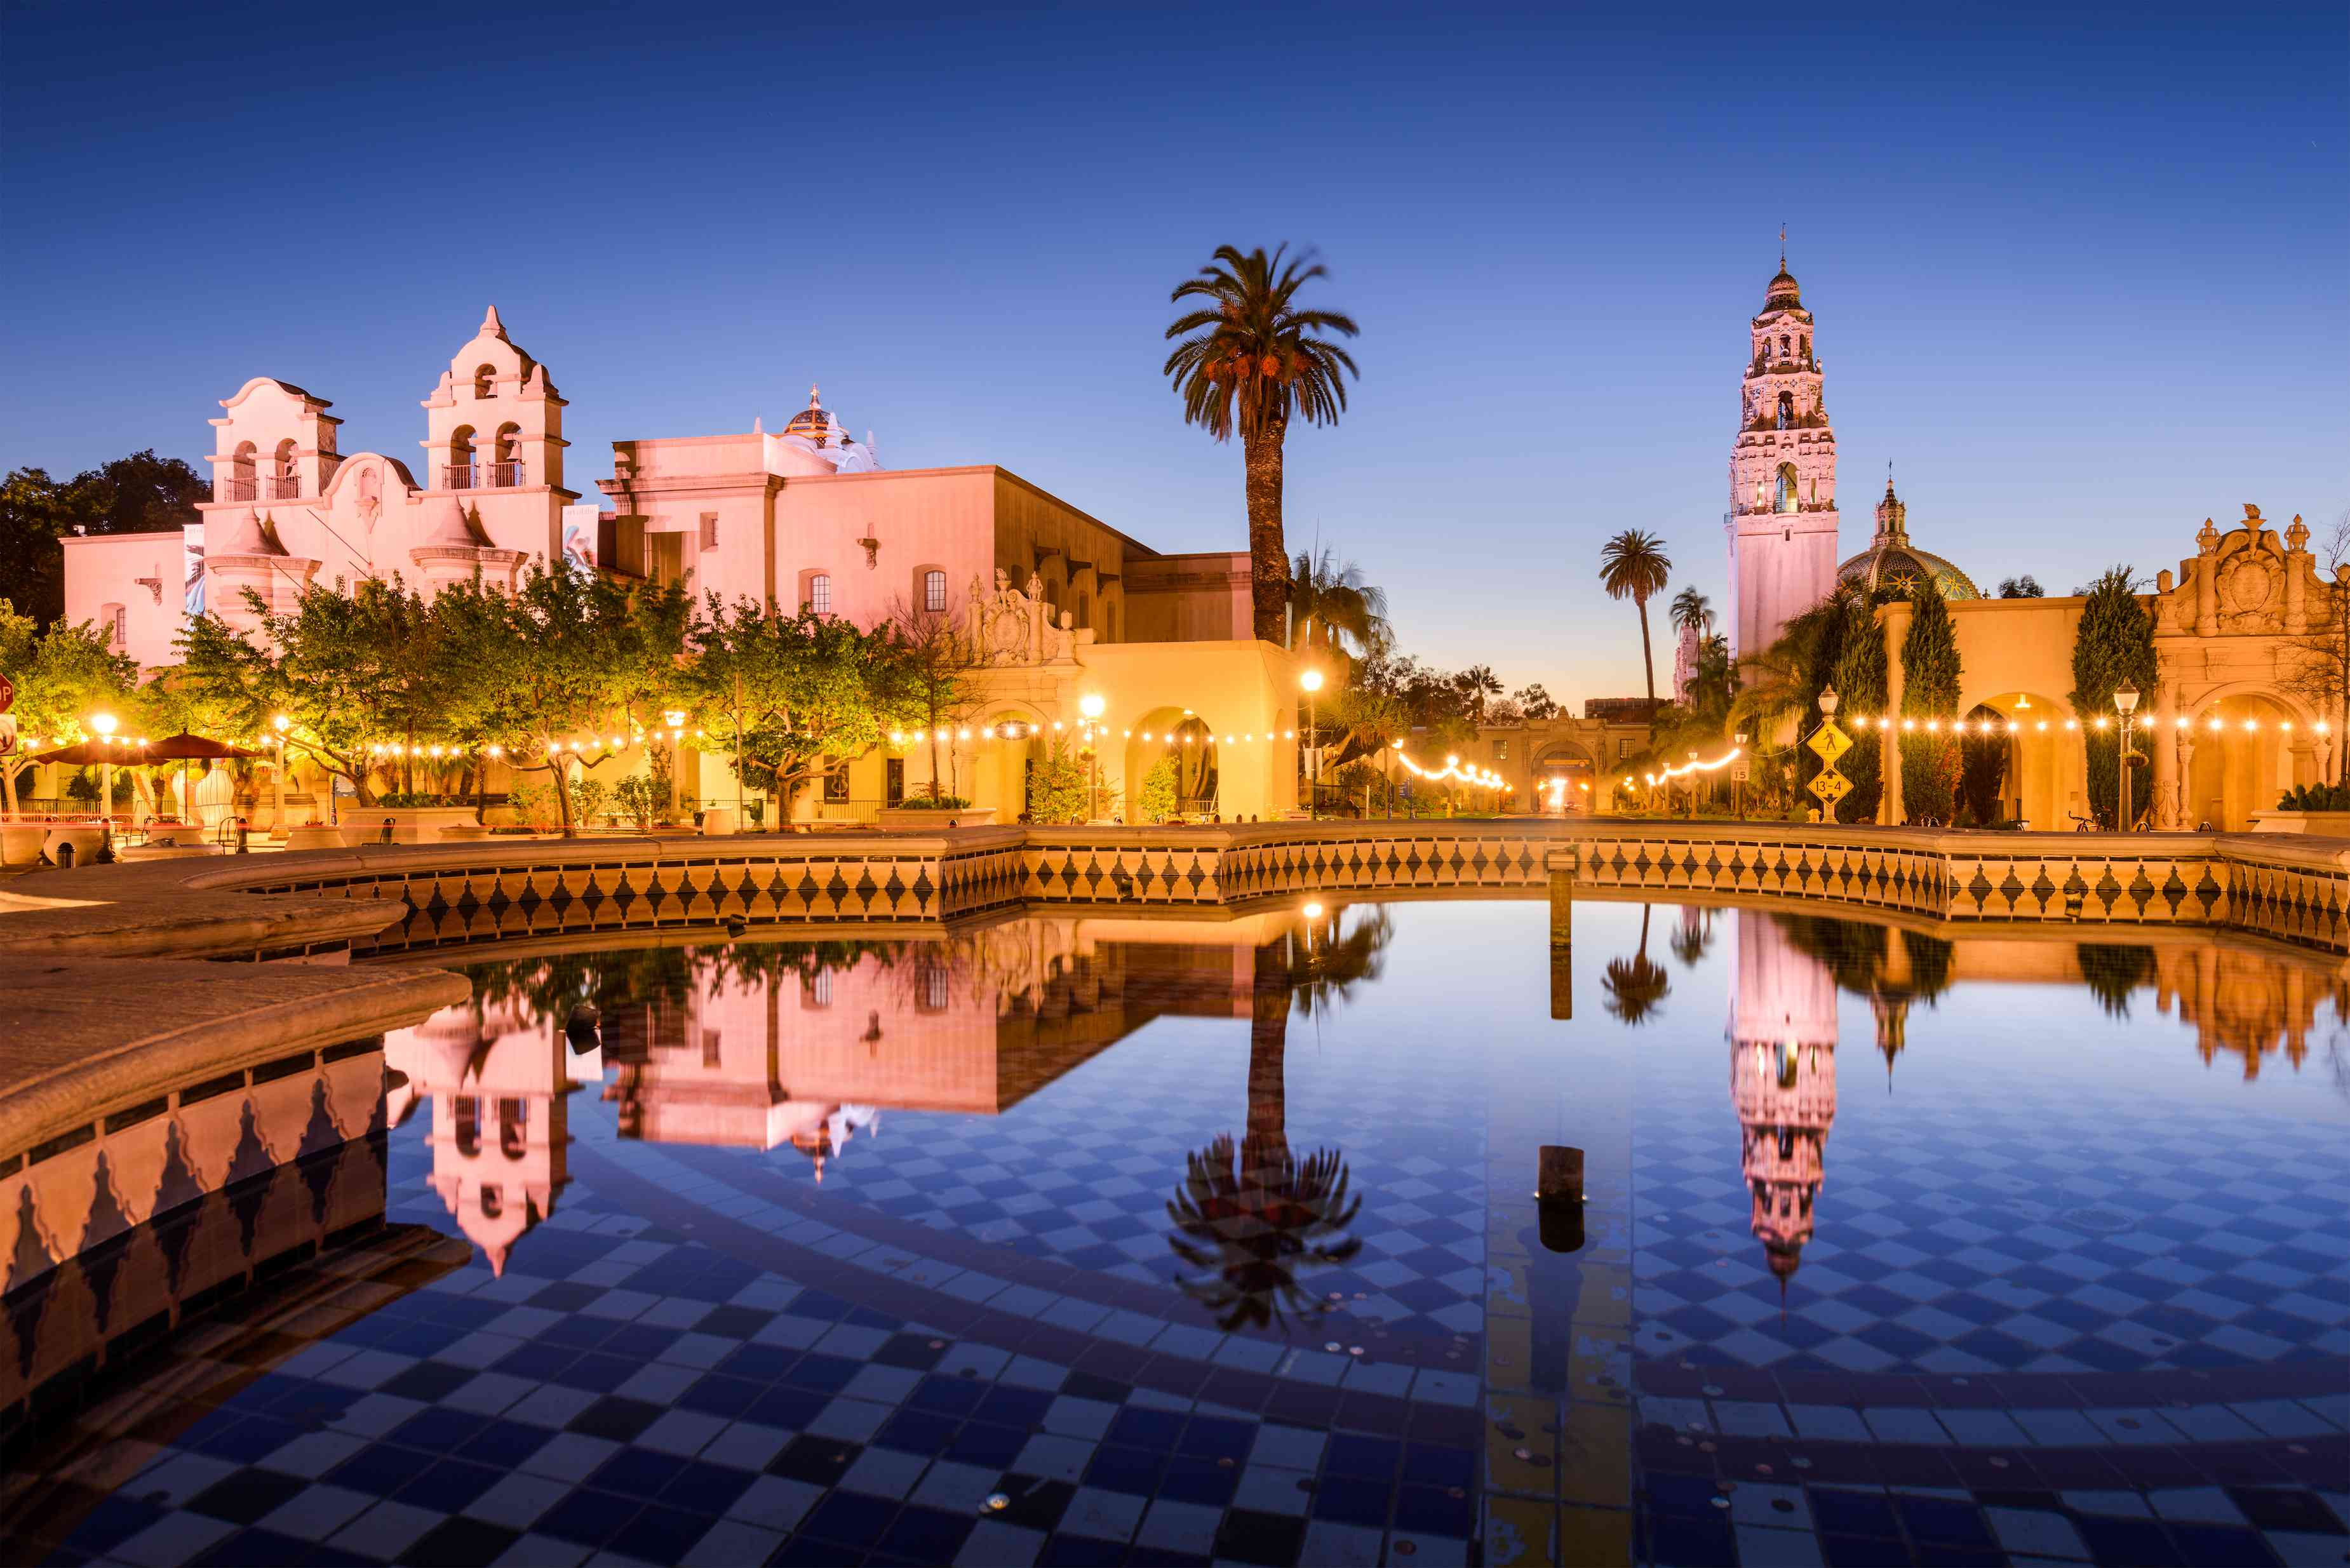 Spanish architecture and a reflecting pool in Balboa Park at Sunset